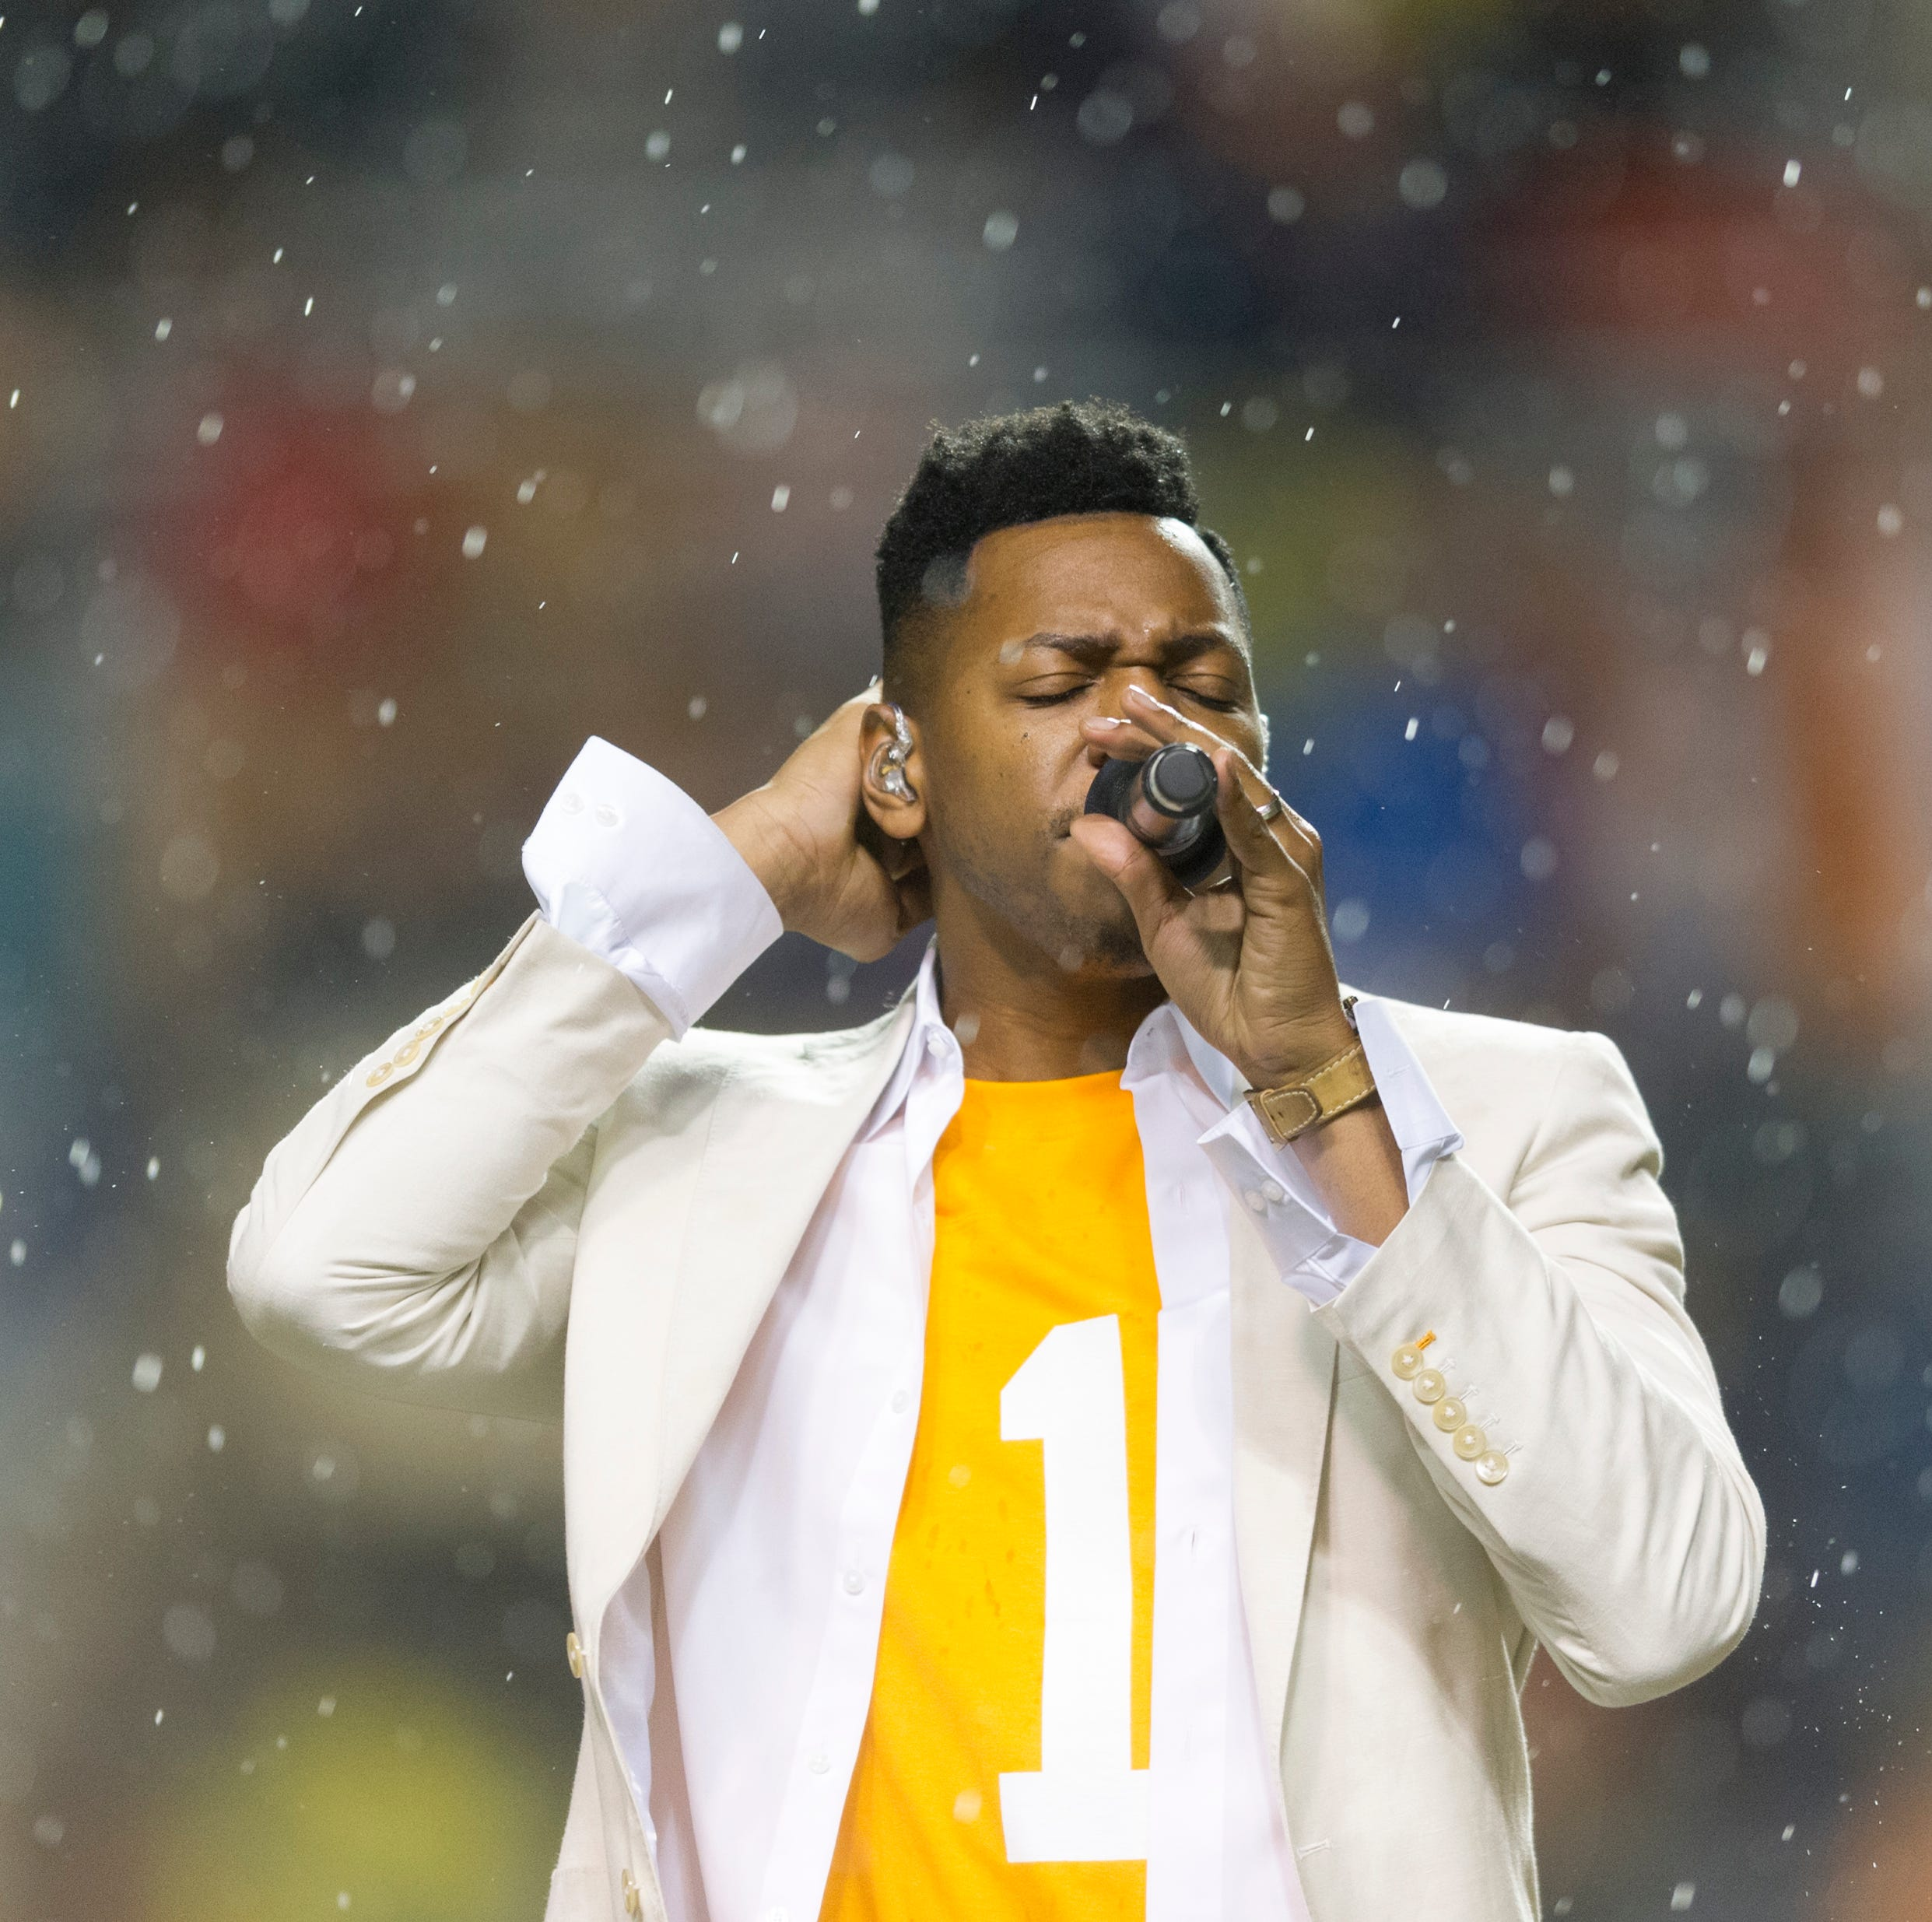 Watch: Knoxville's Chris Blue releases 'I'm a Vol Fan' song celebrating Tennessee basketball